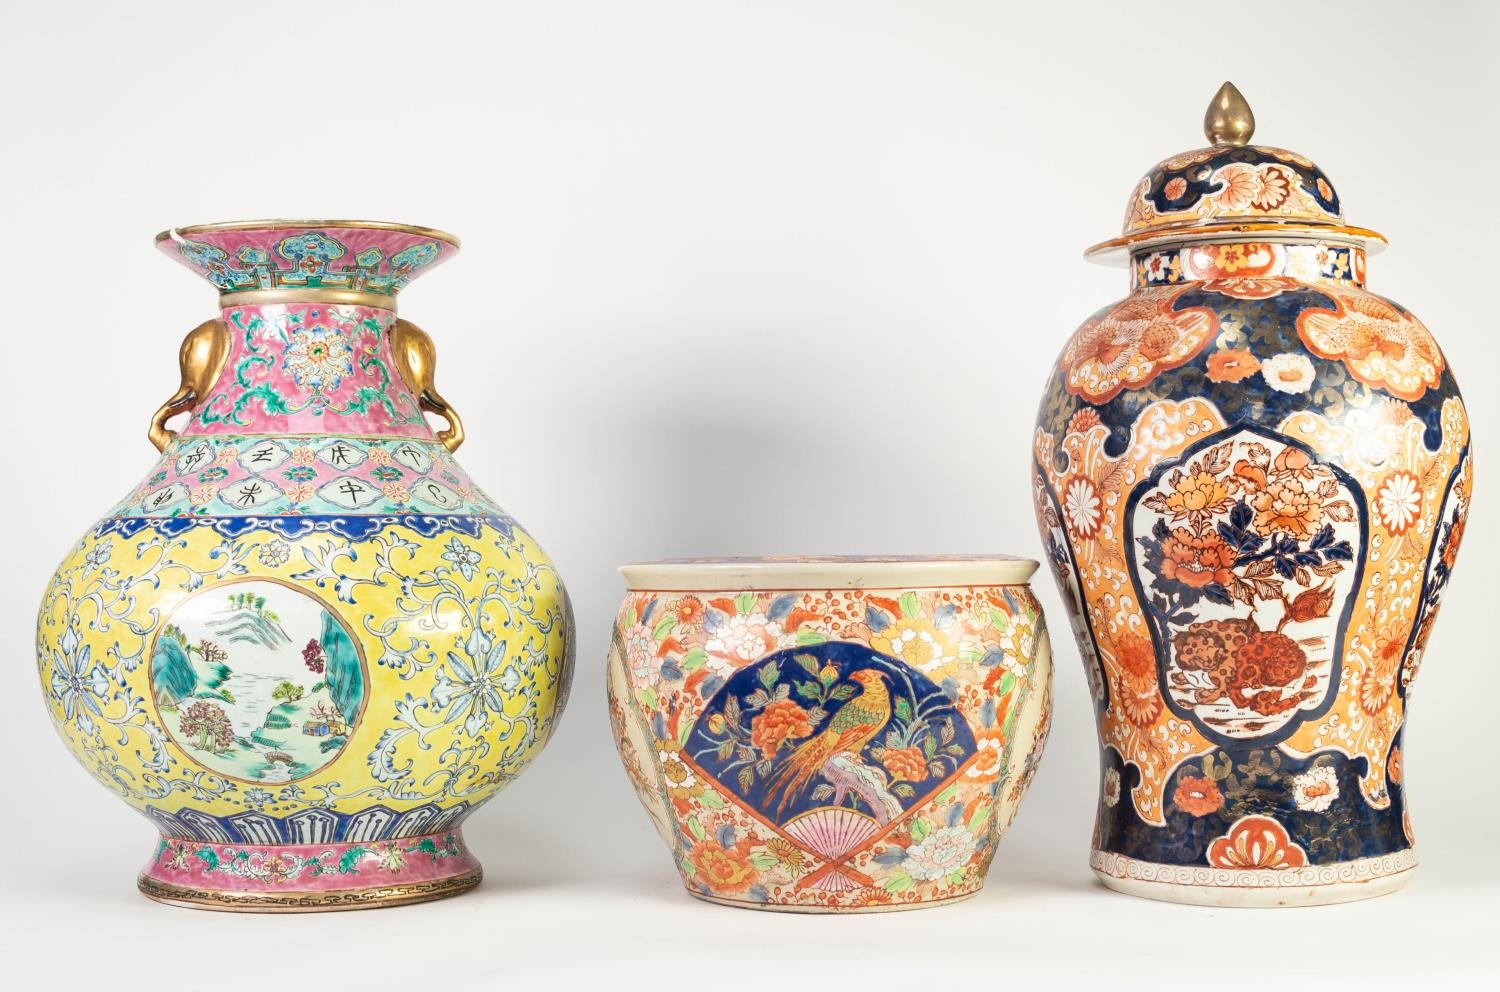 MODERN ORIENTAL JAPANESE IMARI STYLE INVERTED BALUSTER SHAPE JAR WITH COVER; a modern oriental